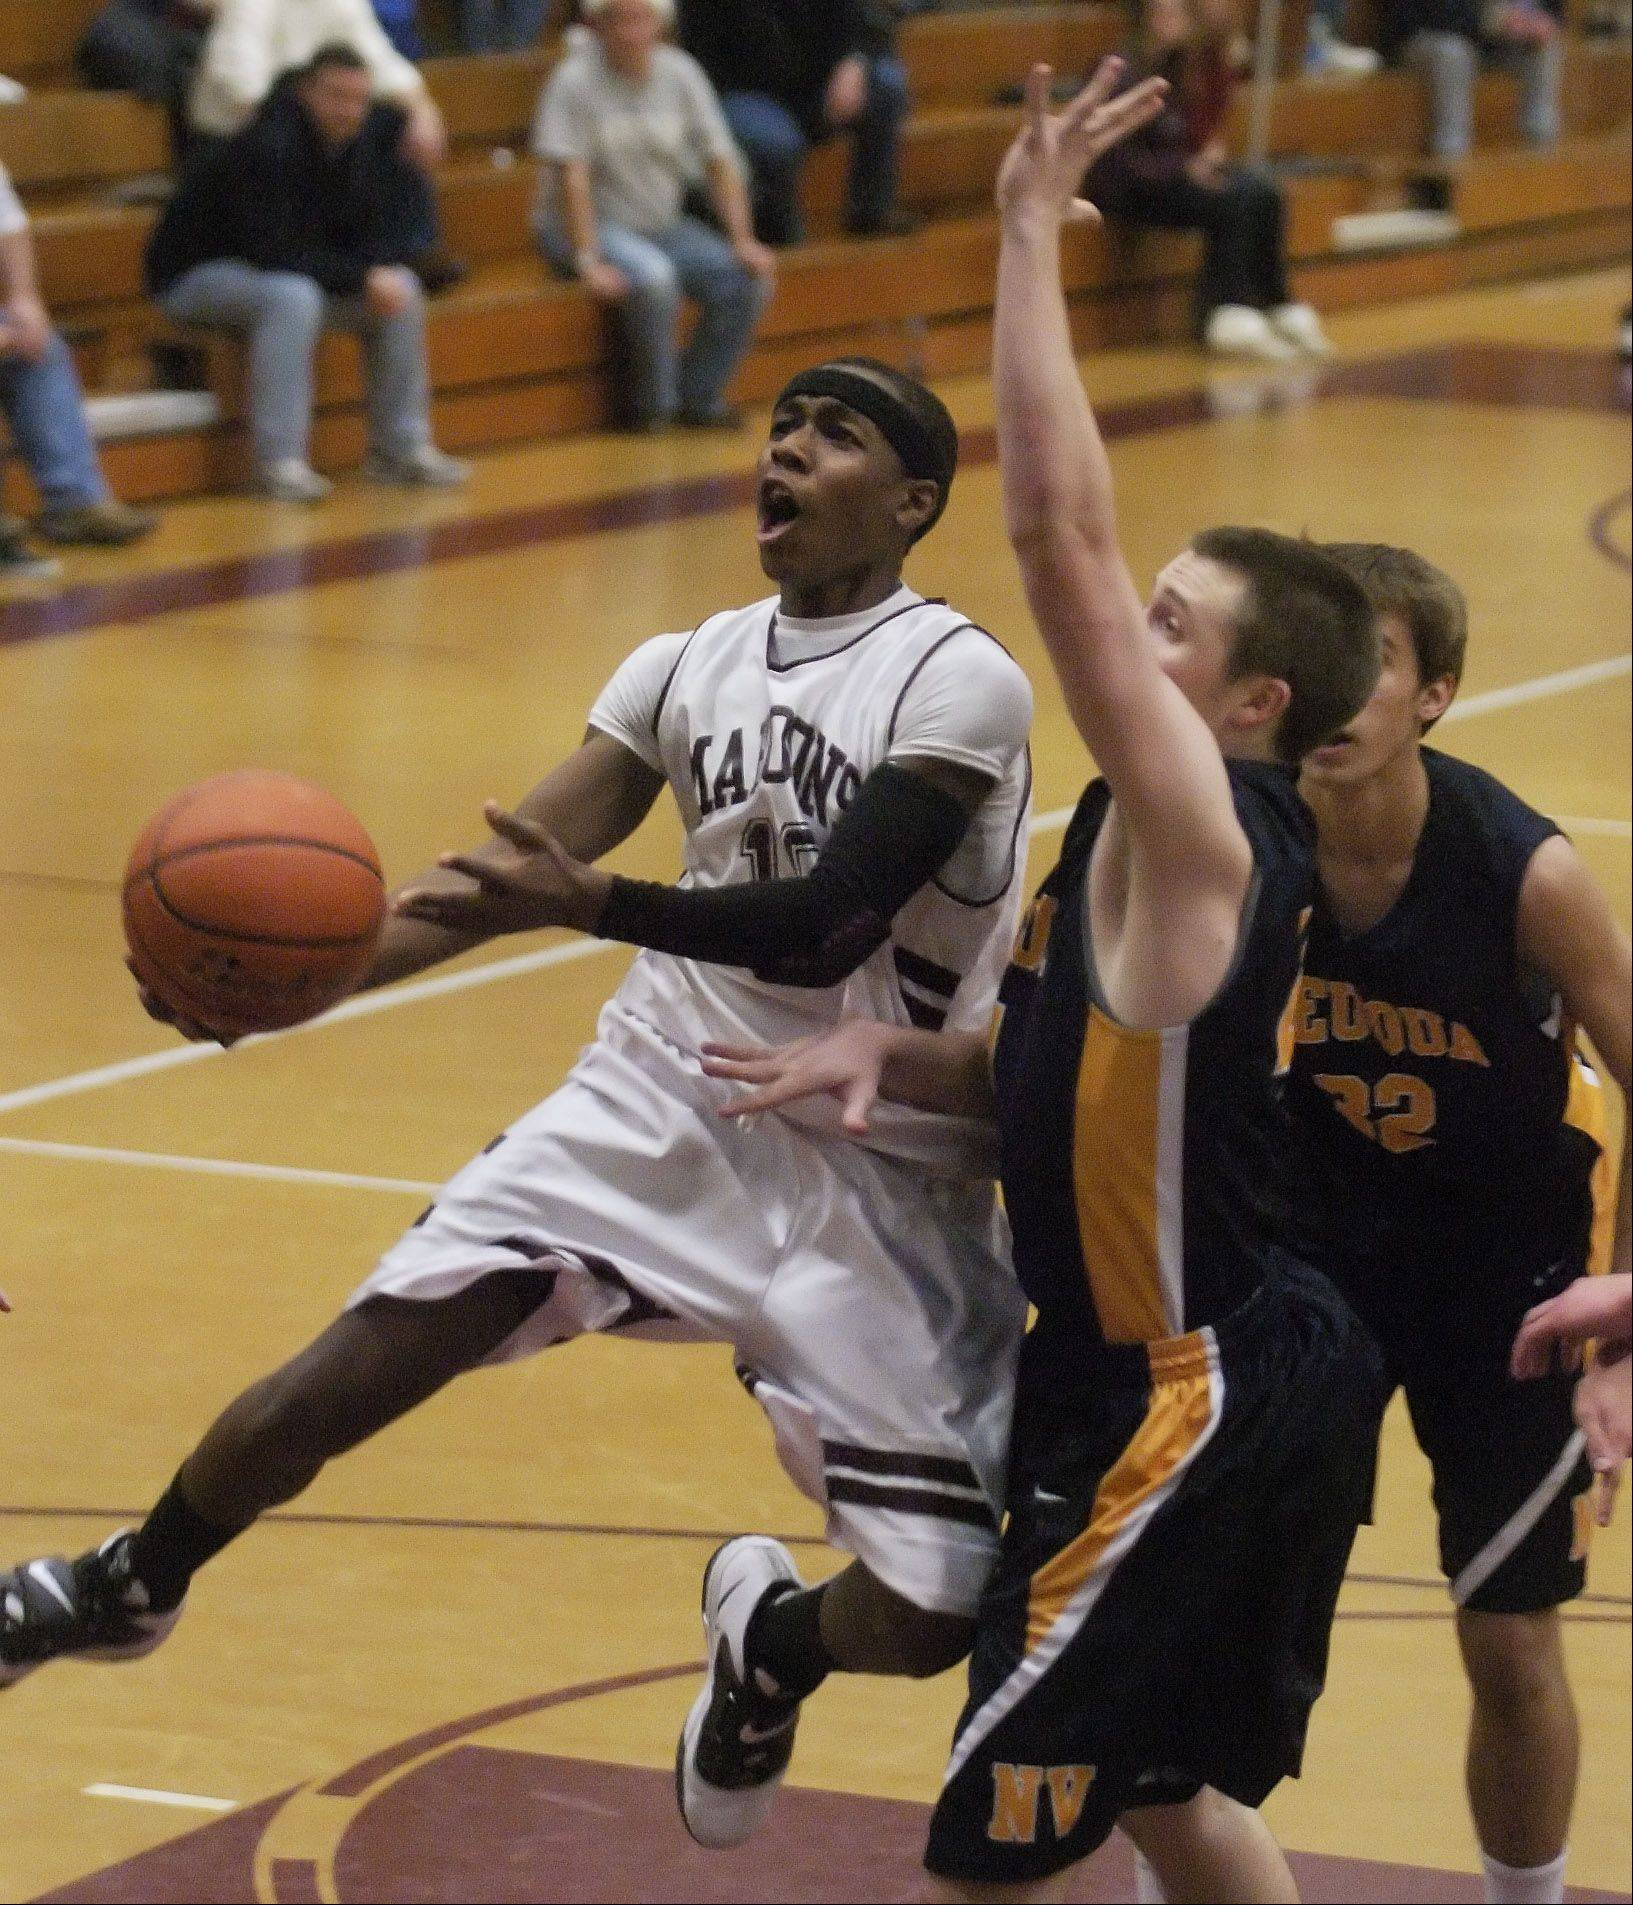 Arie Williams of Elgin drives with the ball.